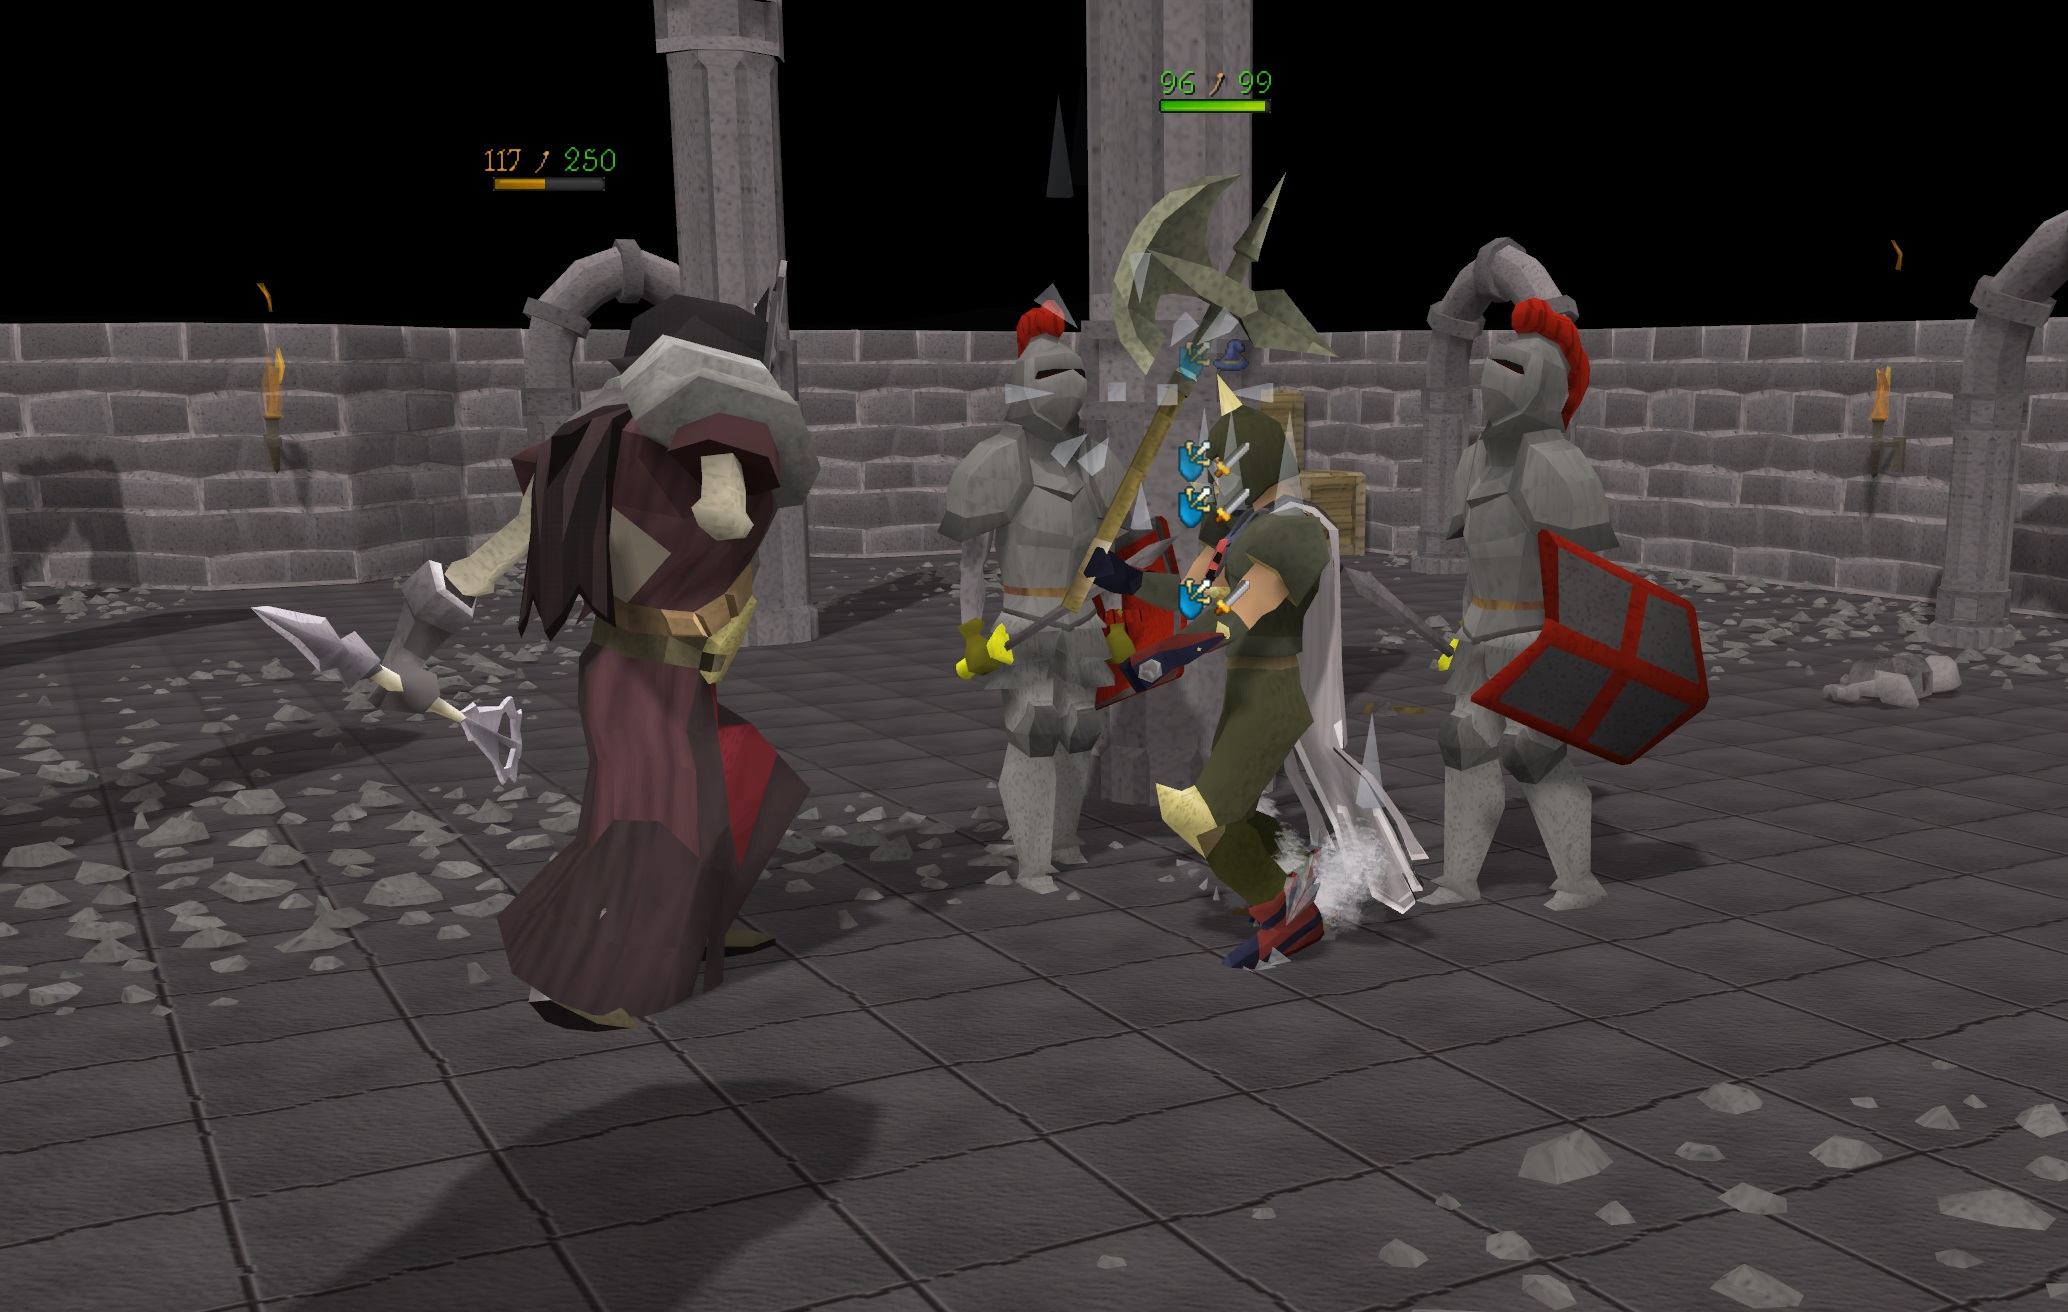 """<a class=""""news-feed-header"""" href=""""https://emps-world.net/forum/index.php?topic=20926.0"""">Virtual Levels, Membership changes and Barbarian Dungeon!</a>"""